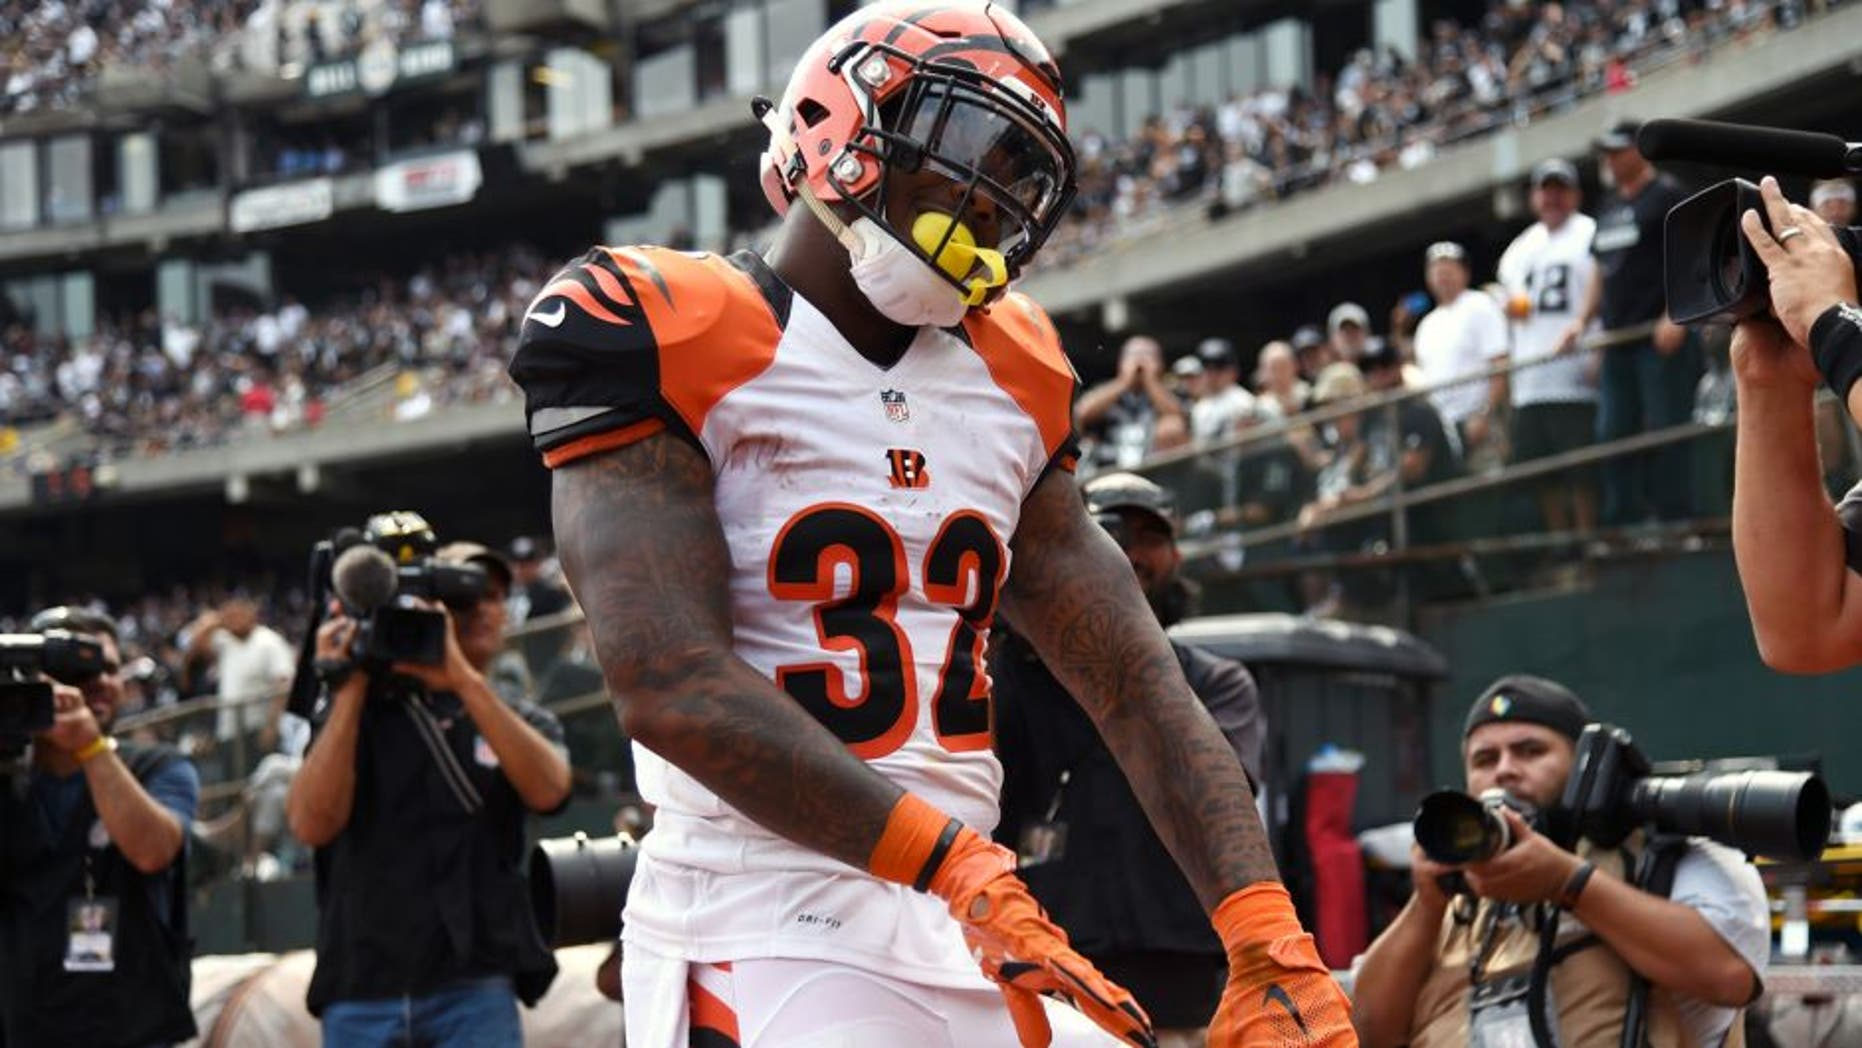 OAKLAND, CA - SEPTEMBER 13: Jeremy Hill #32 of the Cincinnati Bengals celebrates his touchdown during the first half of their NFL game at O.co Coliseum on September 13, 2015 in Oakland, California. (Photo by Thearon W. Henderson/Getty Images)